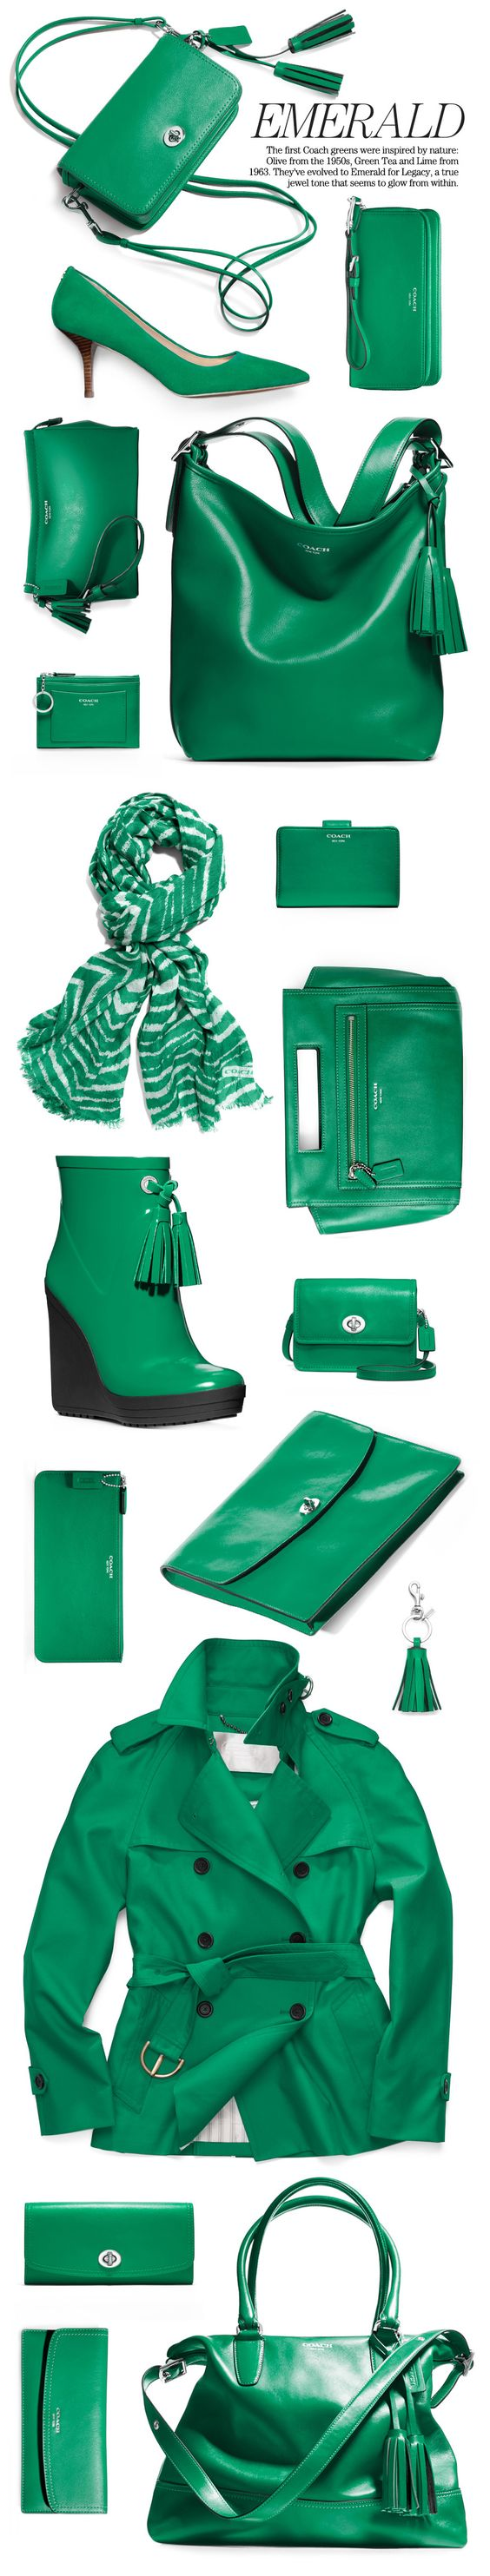 Shop the Coach Legacy Collection in Emerald Green